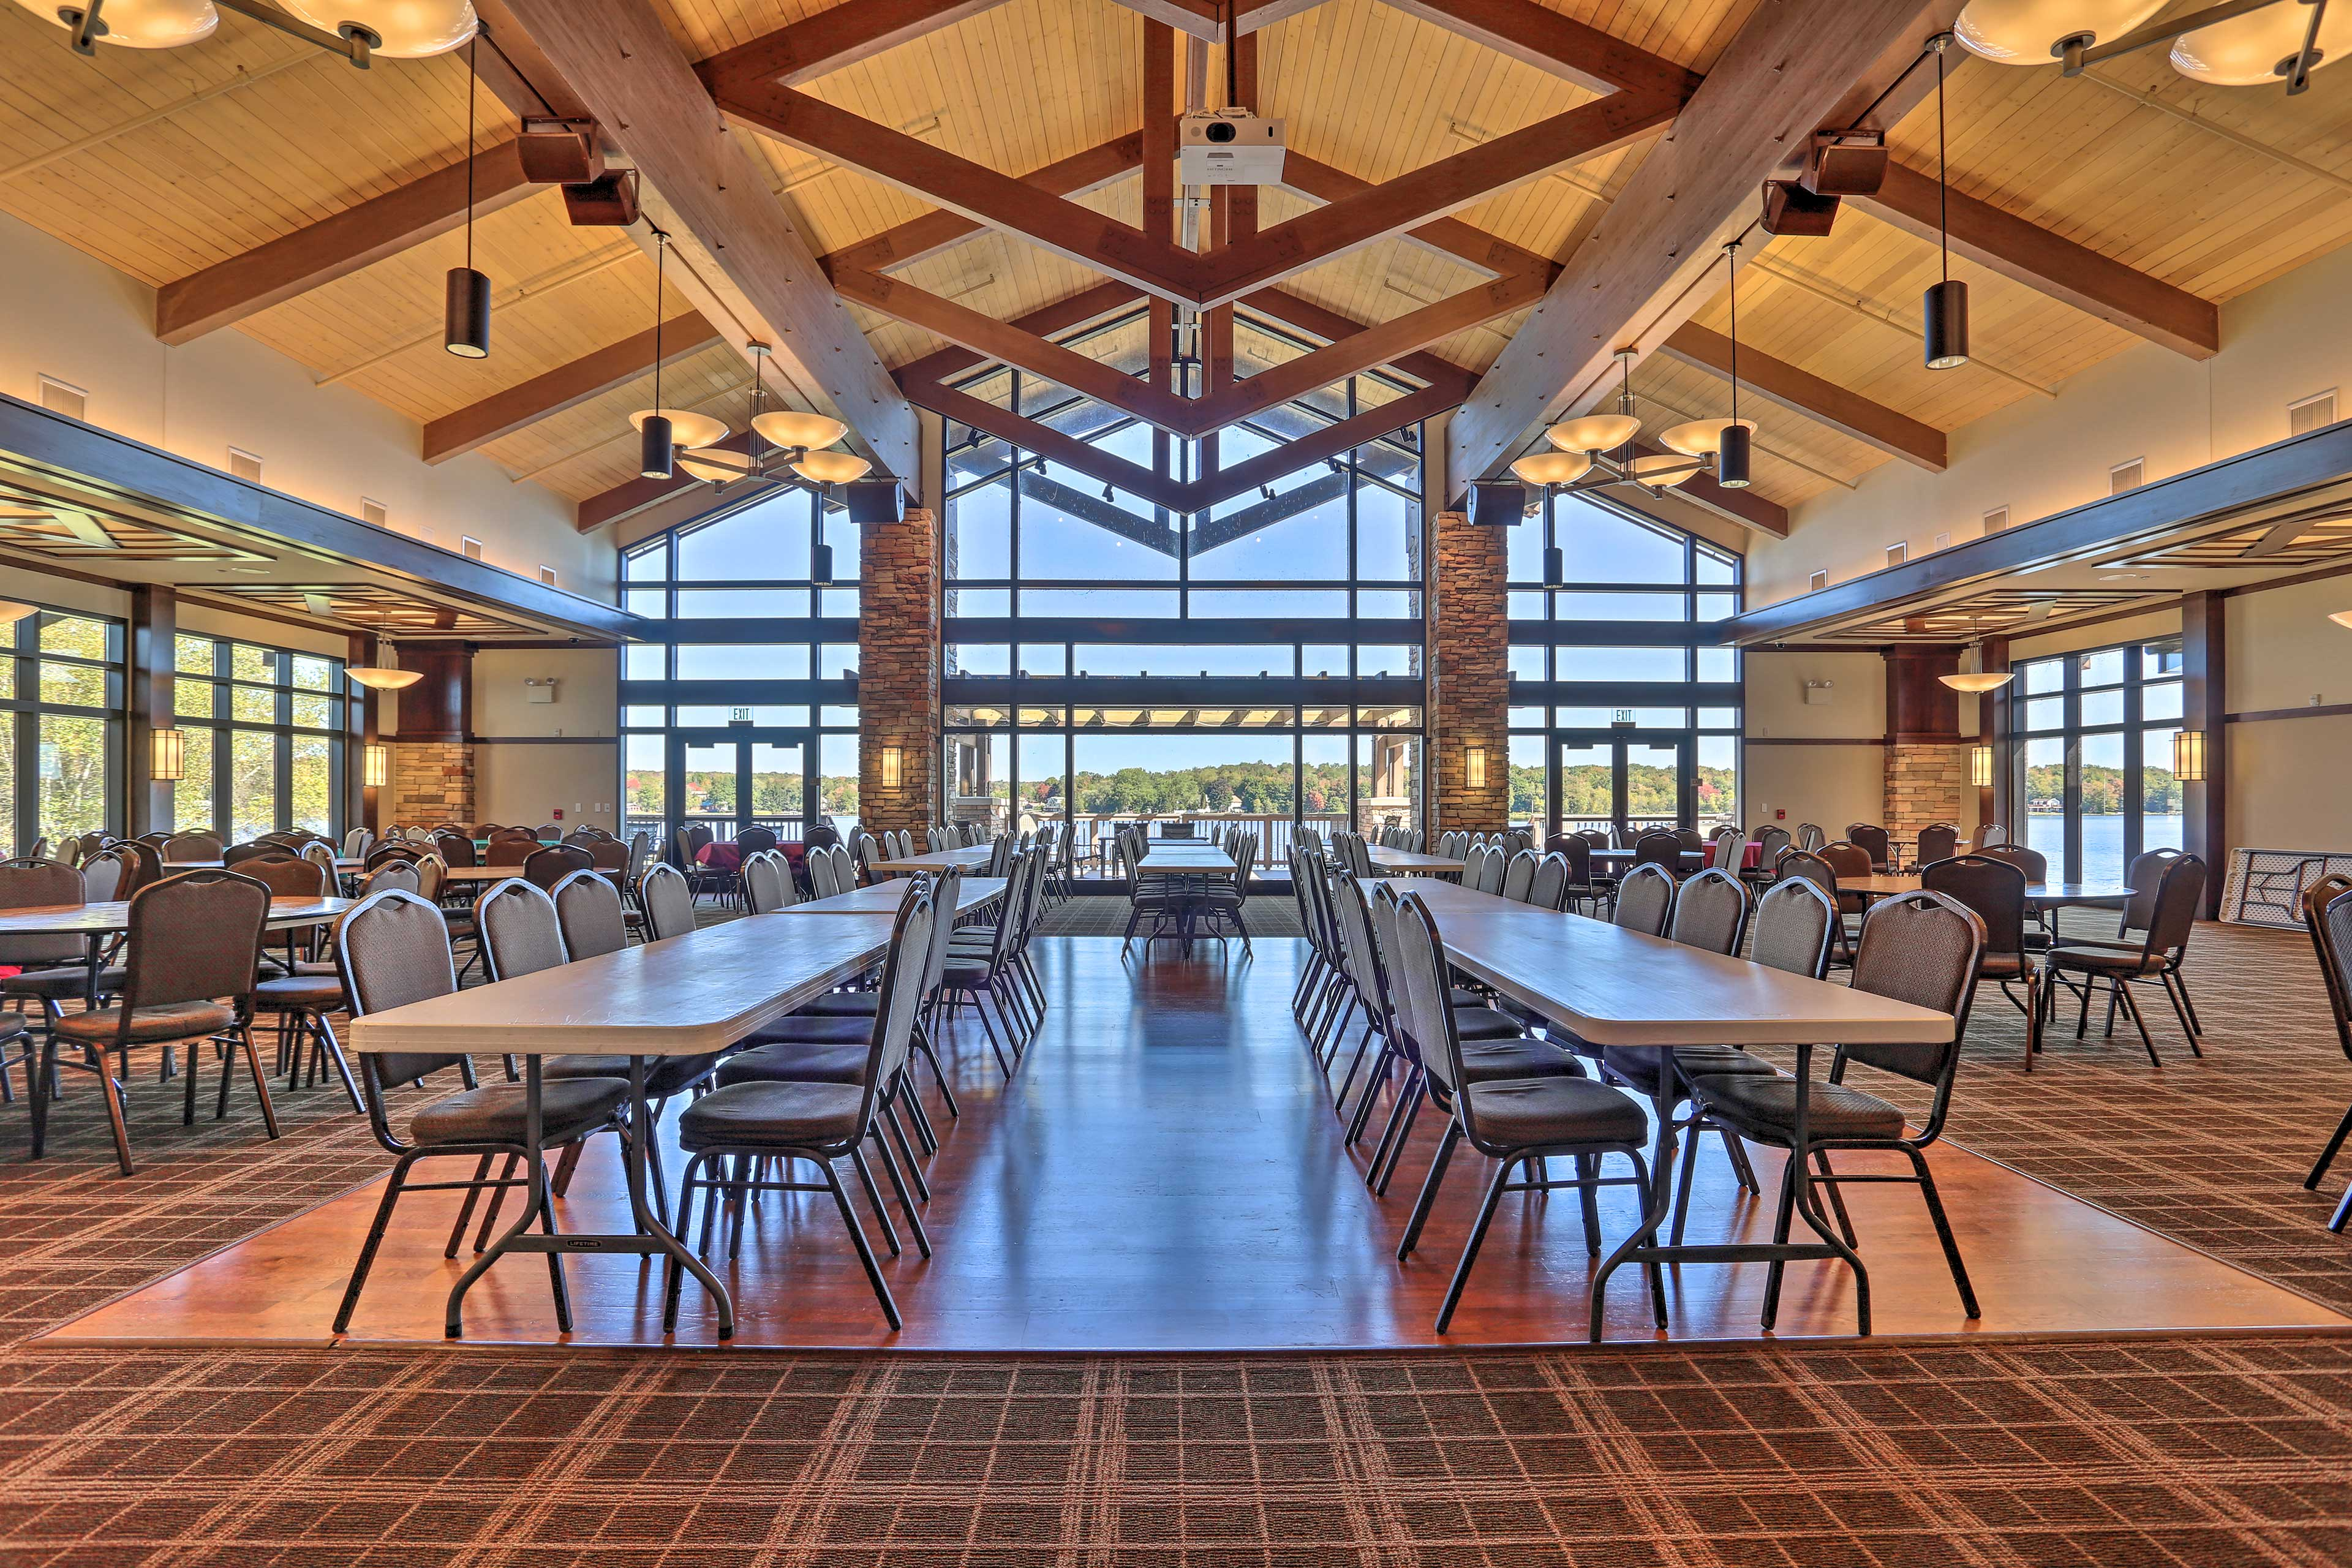 Host an event in the event center overlooking the lake.